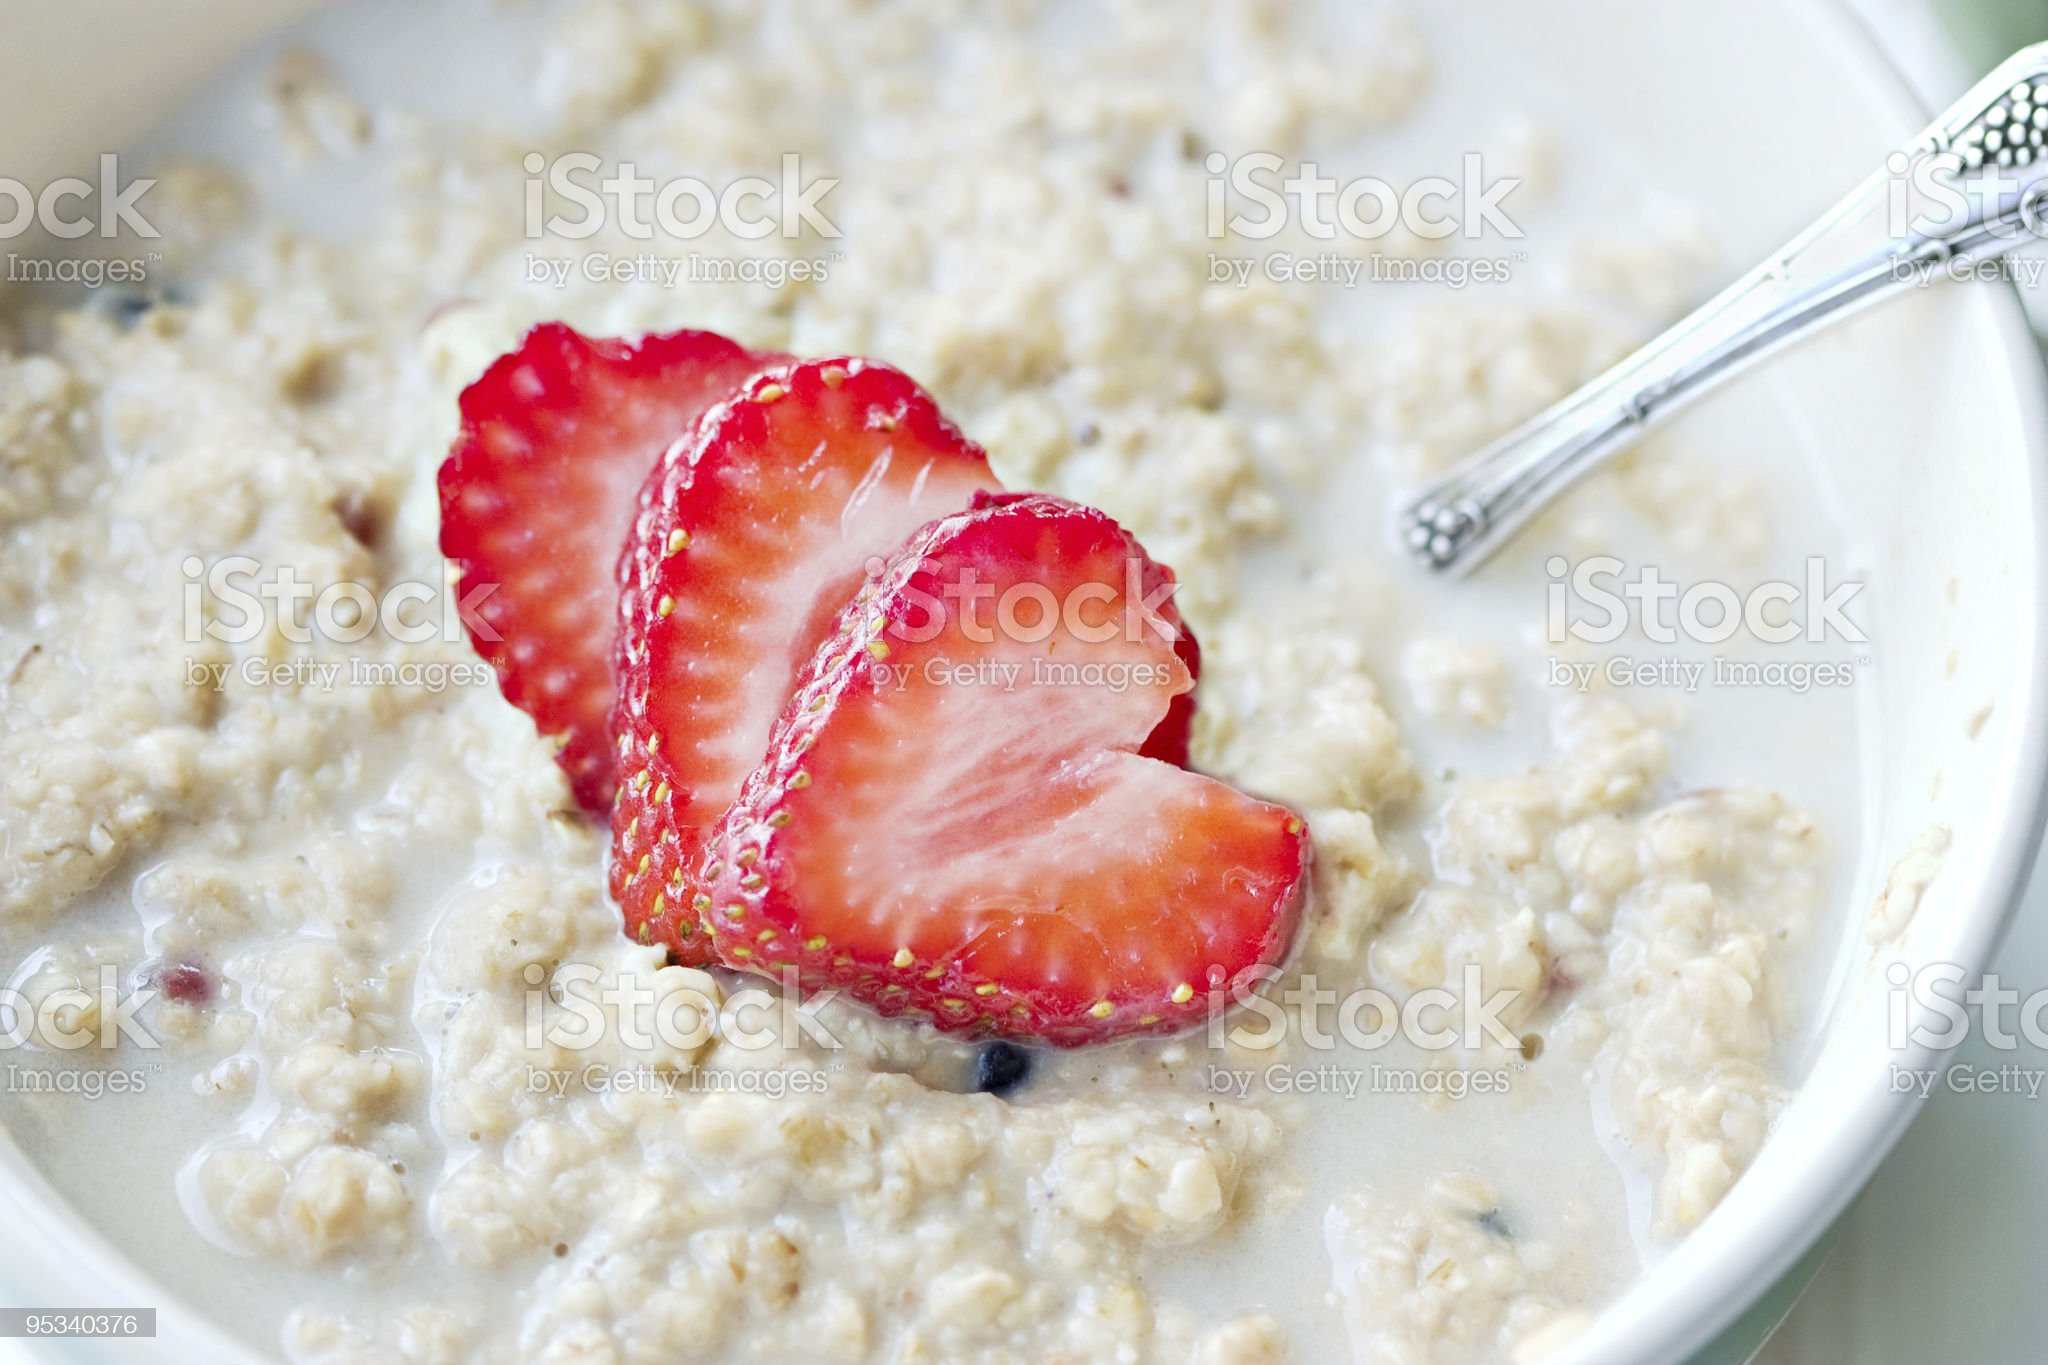 Beautiful photograph of an Oatmeal with strawberries royalty-free stock photo